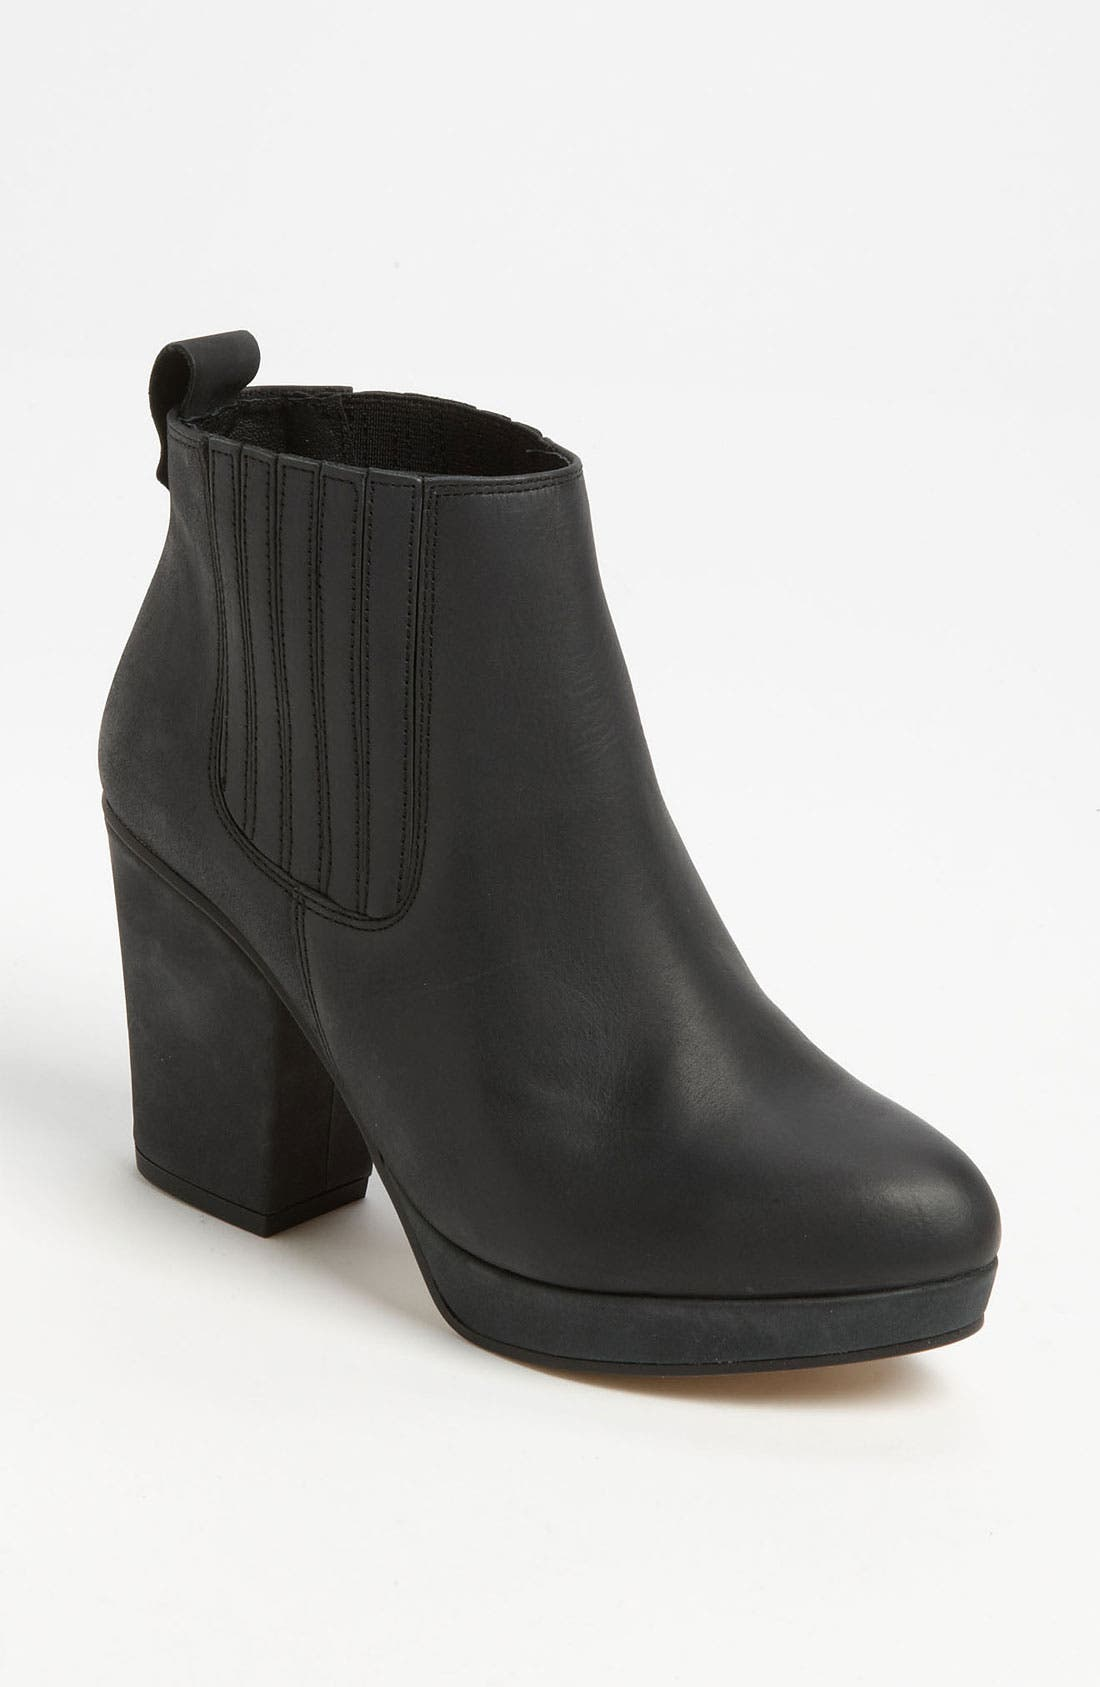 Alternate Image 1 Selected - Topshop 'Alexy' Ankle Boot